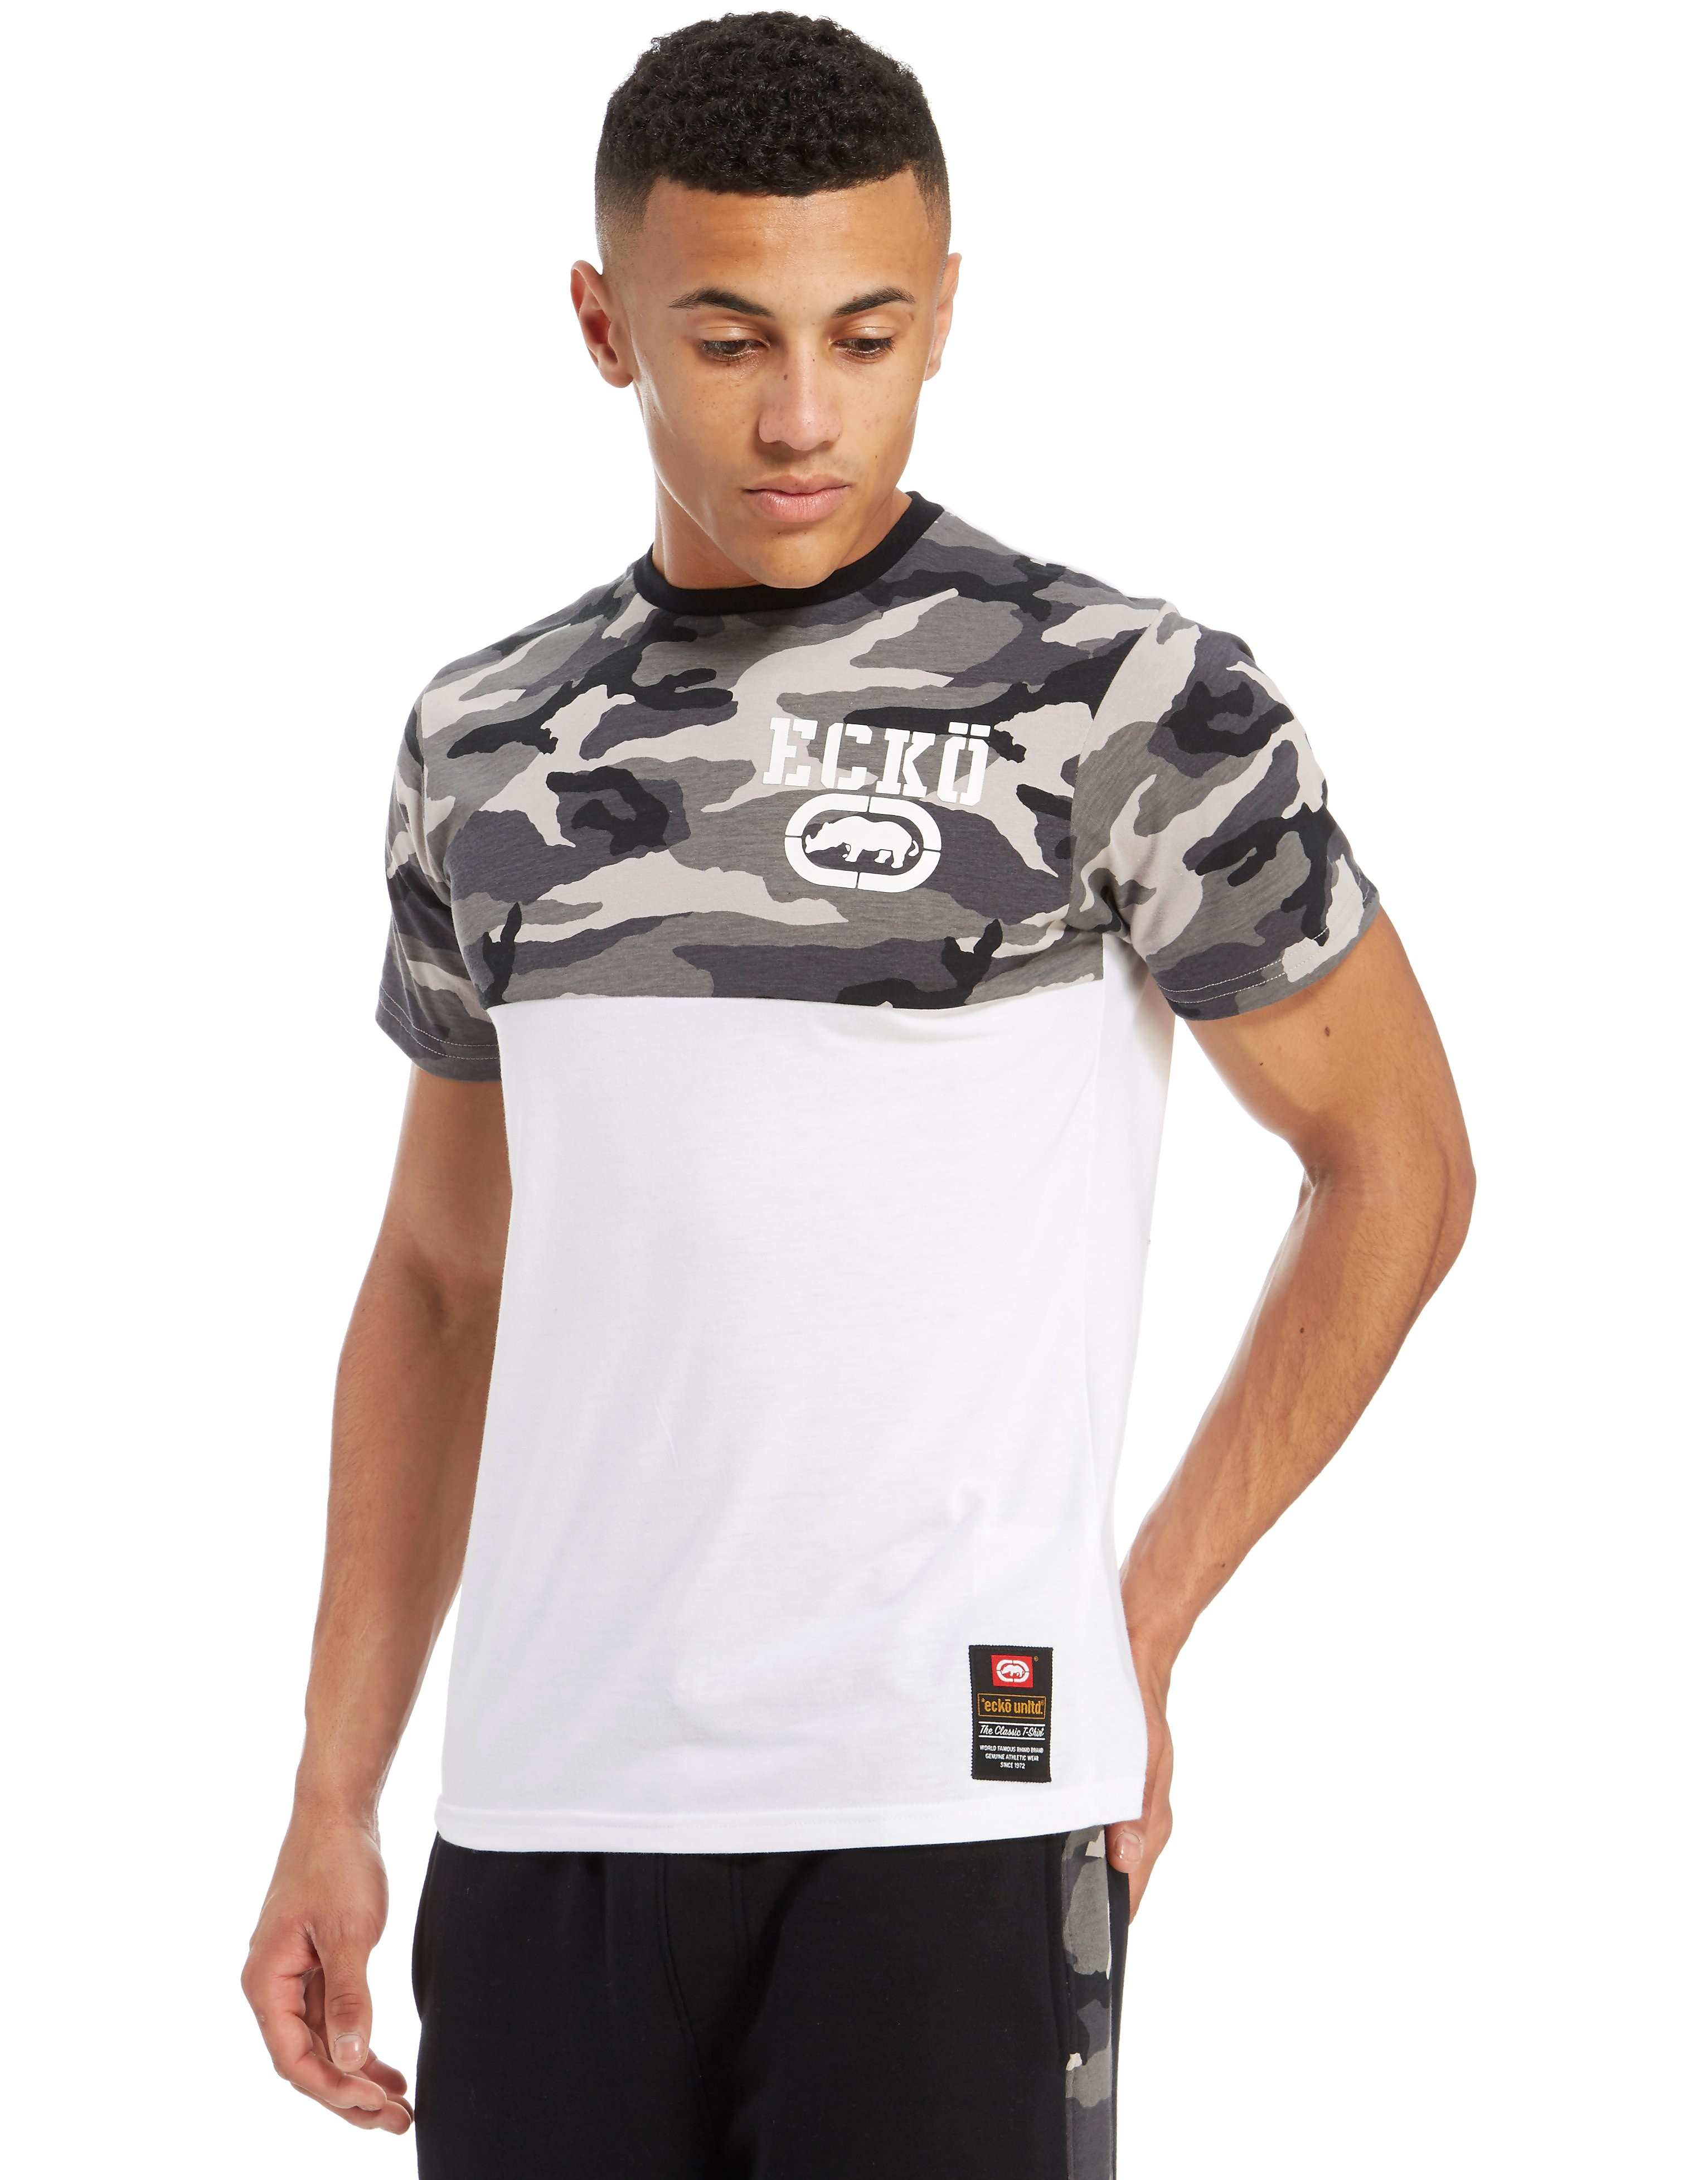 Ecko Candy Bomber T-Shirt